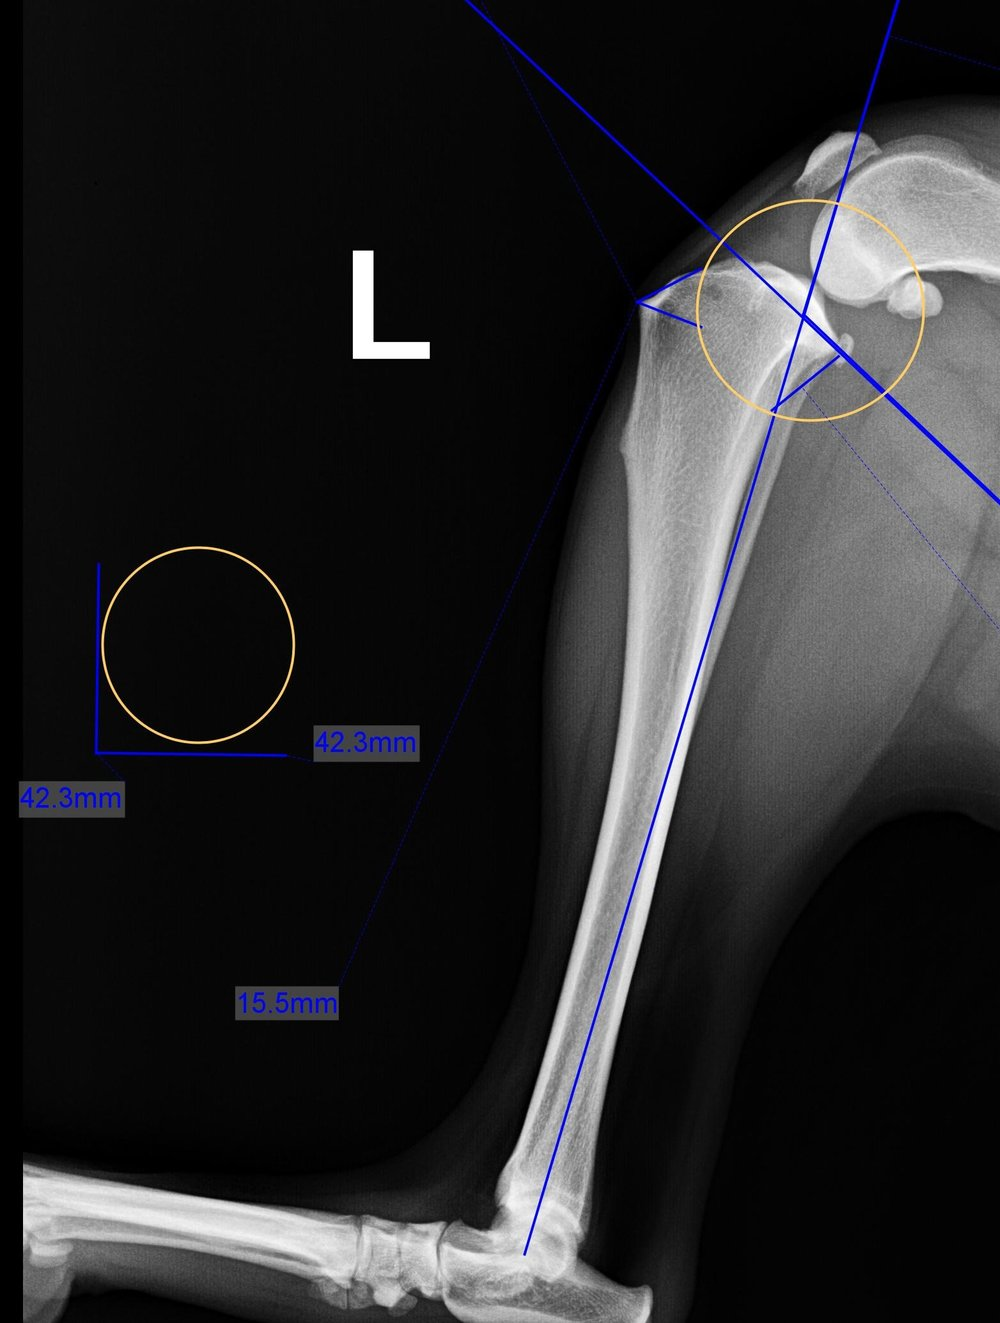 TPLO Lateral Preop Planning.jpg